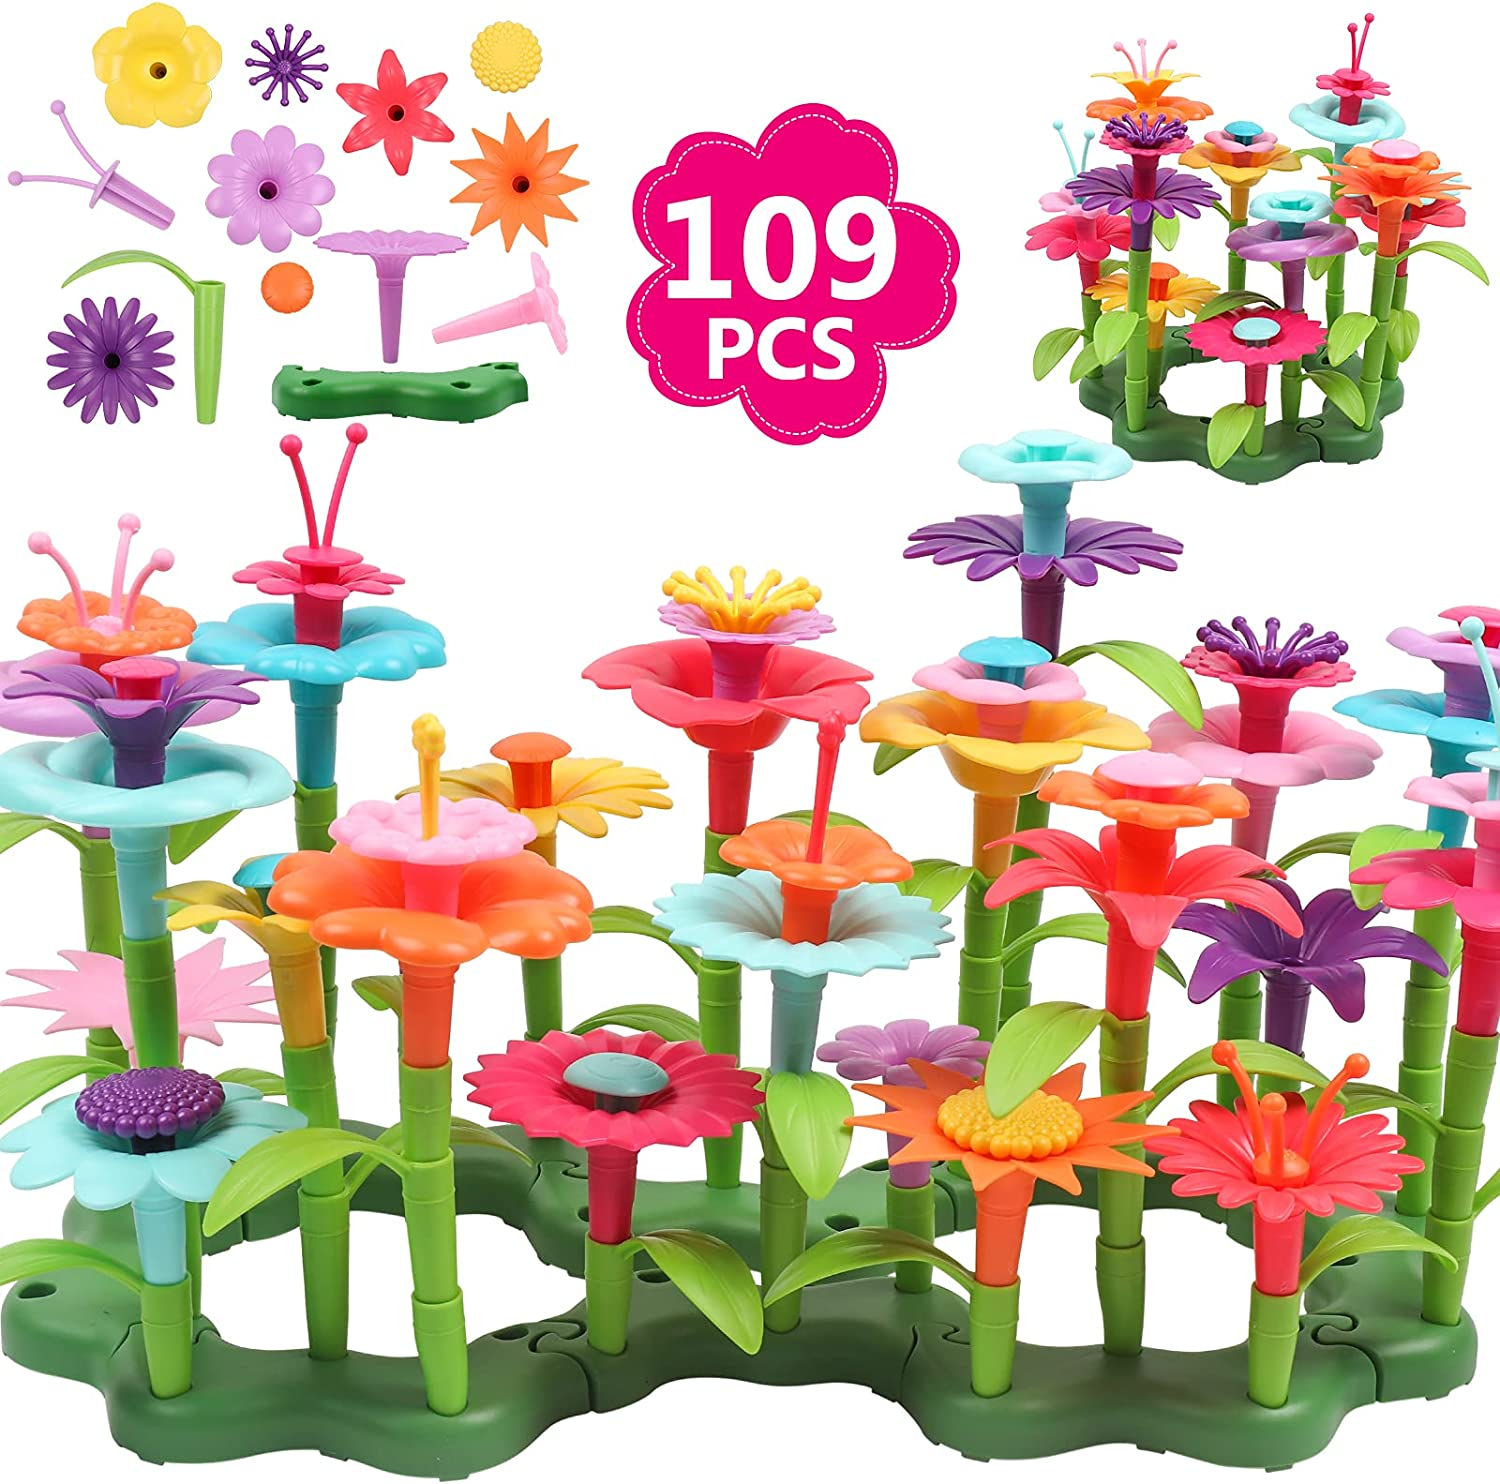 DigHealth Flower Garden Building Toys for Girls, 109 PCS Pretend Garden Toy Playset Gift, DIY Bouquet Stacking Activity, Educational Game for Kids Age 3, 4, 5, 6 Year Old